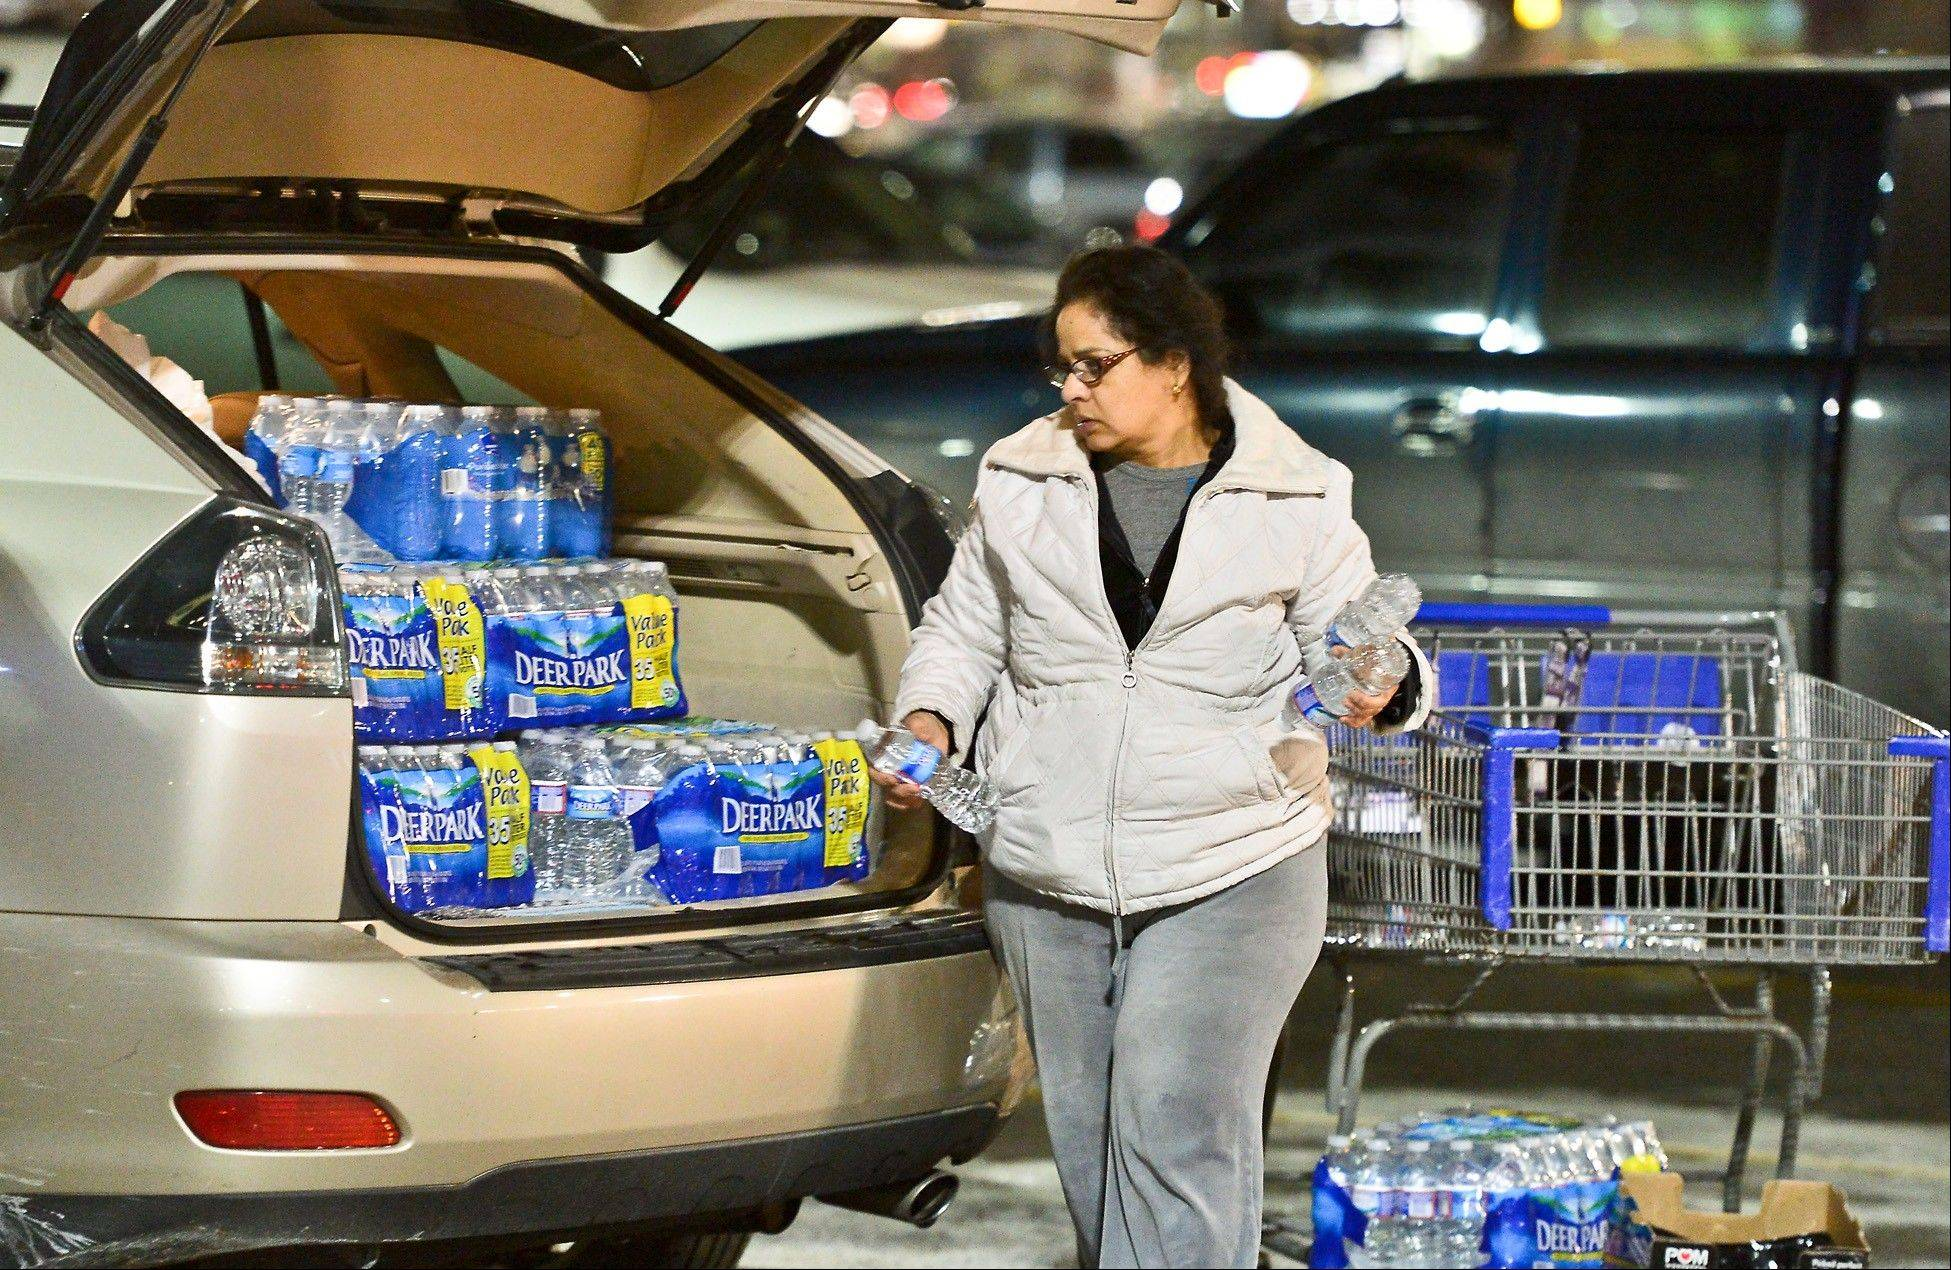 Charleston resident Niru Parikshak loads up the back of her car with bottled water Thursday Jan. 9, 2014 in Charleston, W.Va. Every retailer for a 20-mile radius sold out of bottled water after a chemical leak Thursday morning up river from the WV American Plant on the Elk River forced the water plant to shut down.